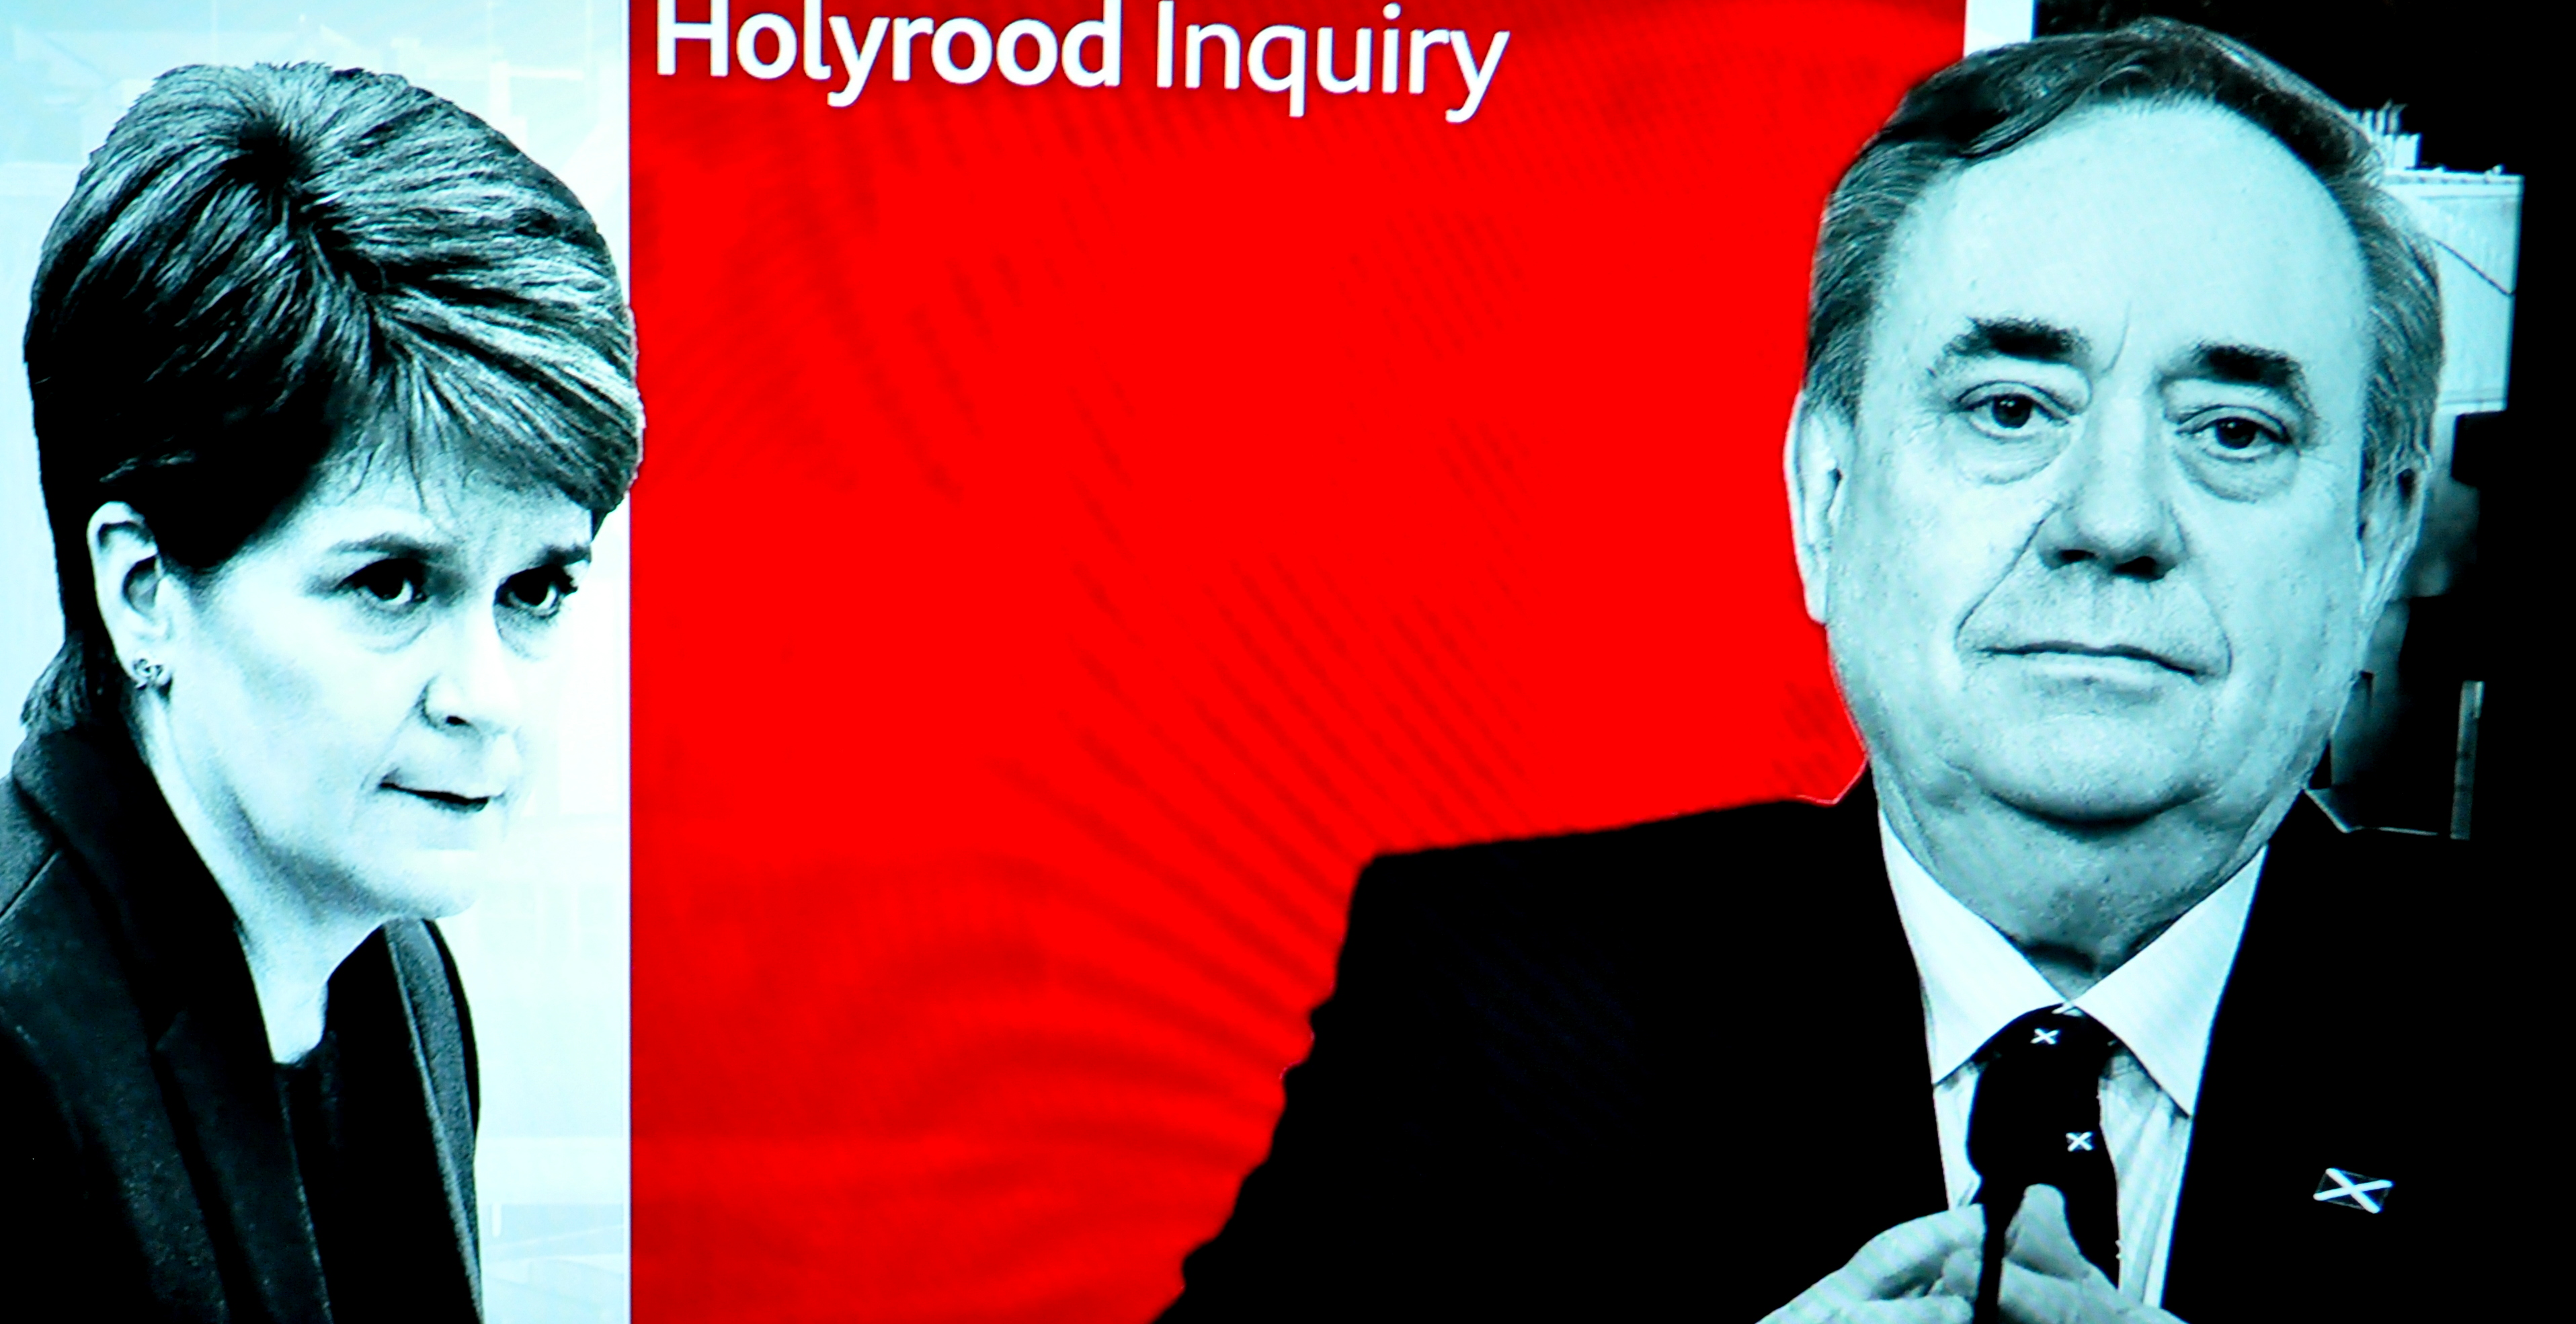 SALMOND INQUIRY: Further publication of judicial review advice